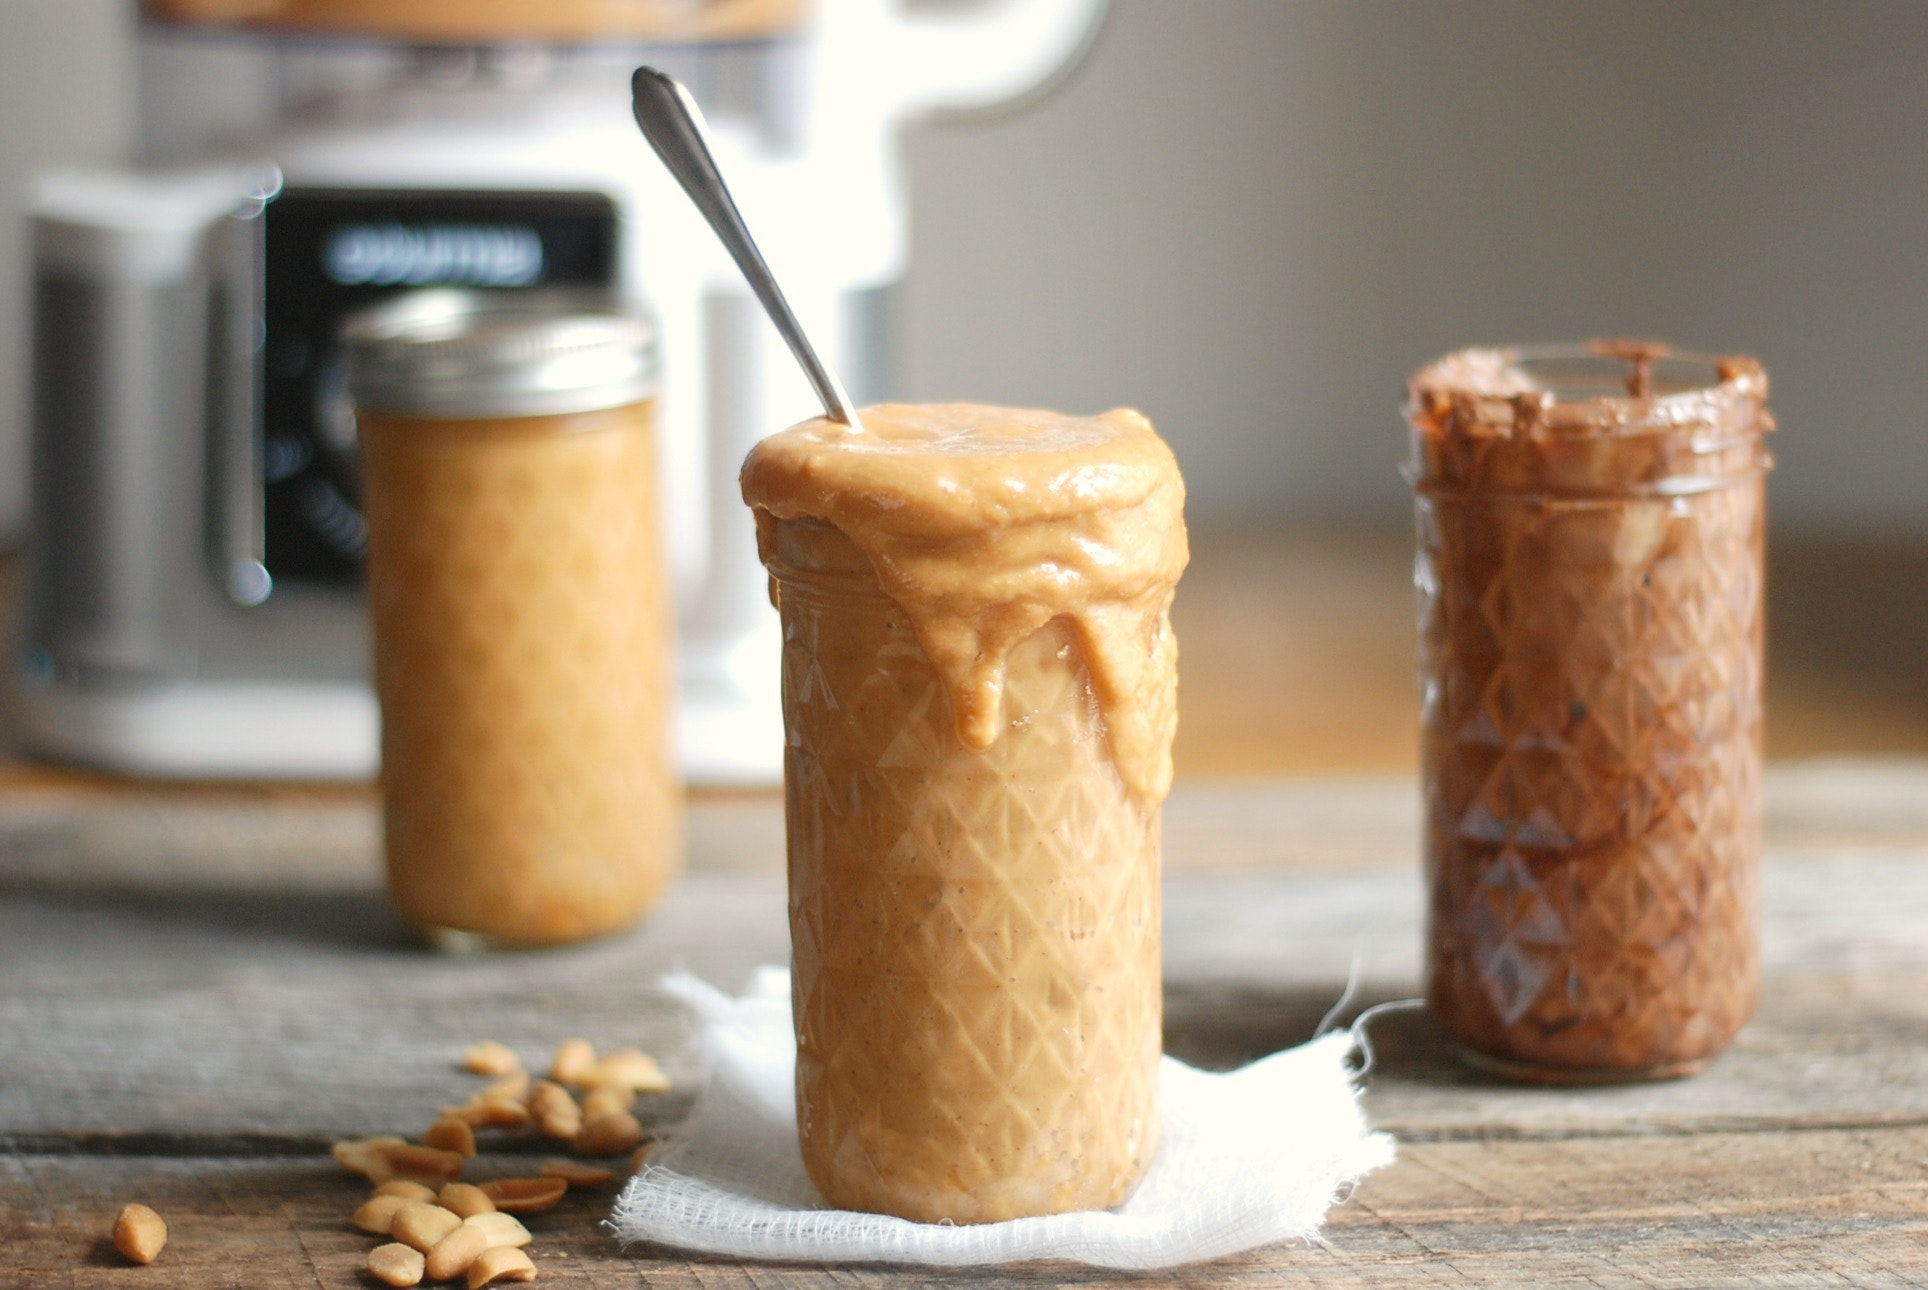 How to Make Homemade Nut Butter